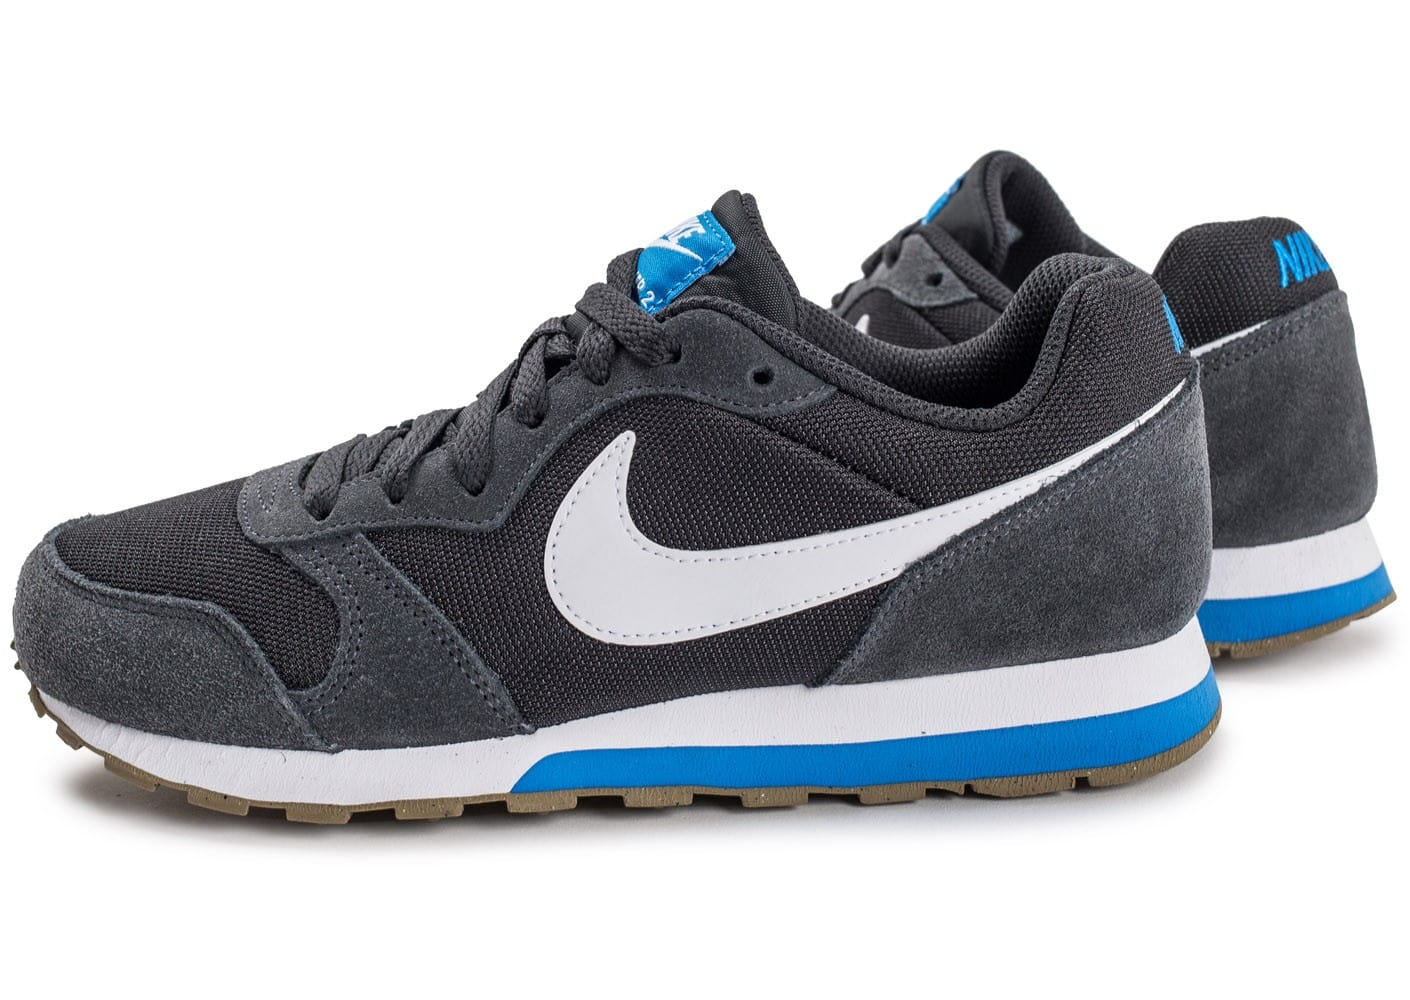 nike md runner 2 junior grise chaussures enfant chausport. Black Bedroom Furniture Sets. Home Design Ideas